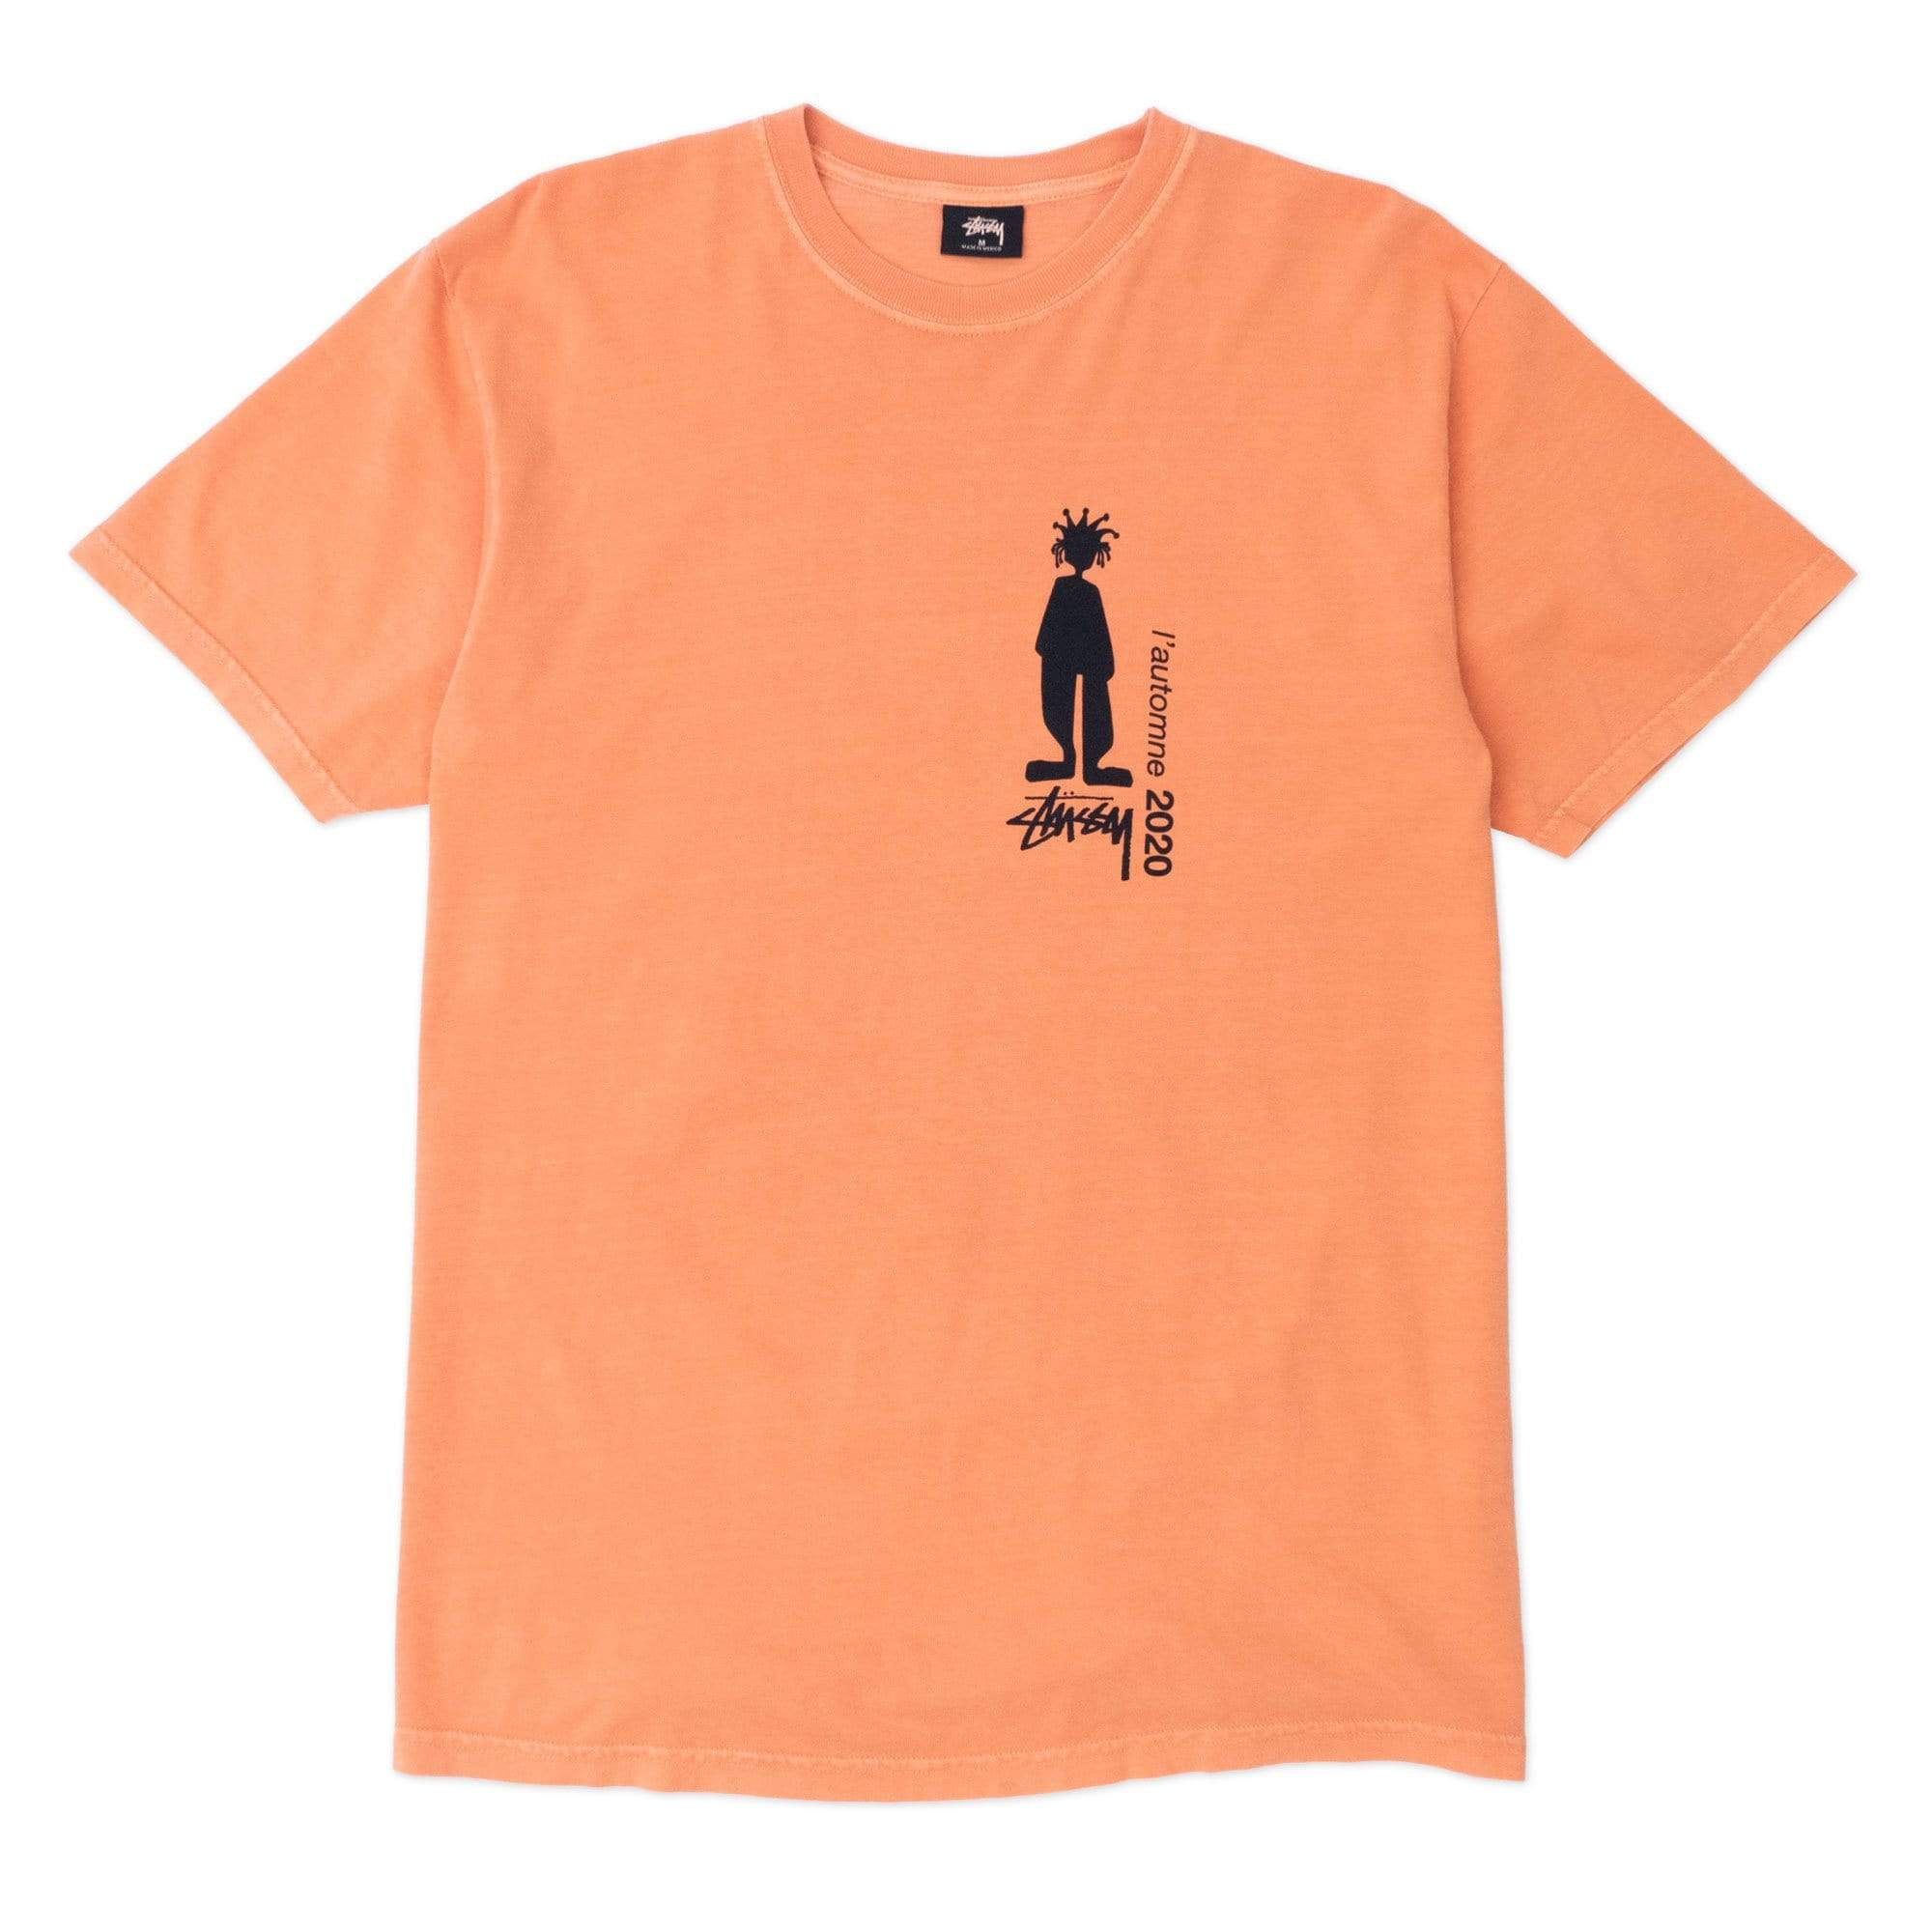 Stüssy T-Shirts M Delusion Pig. Dyed Tee